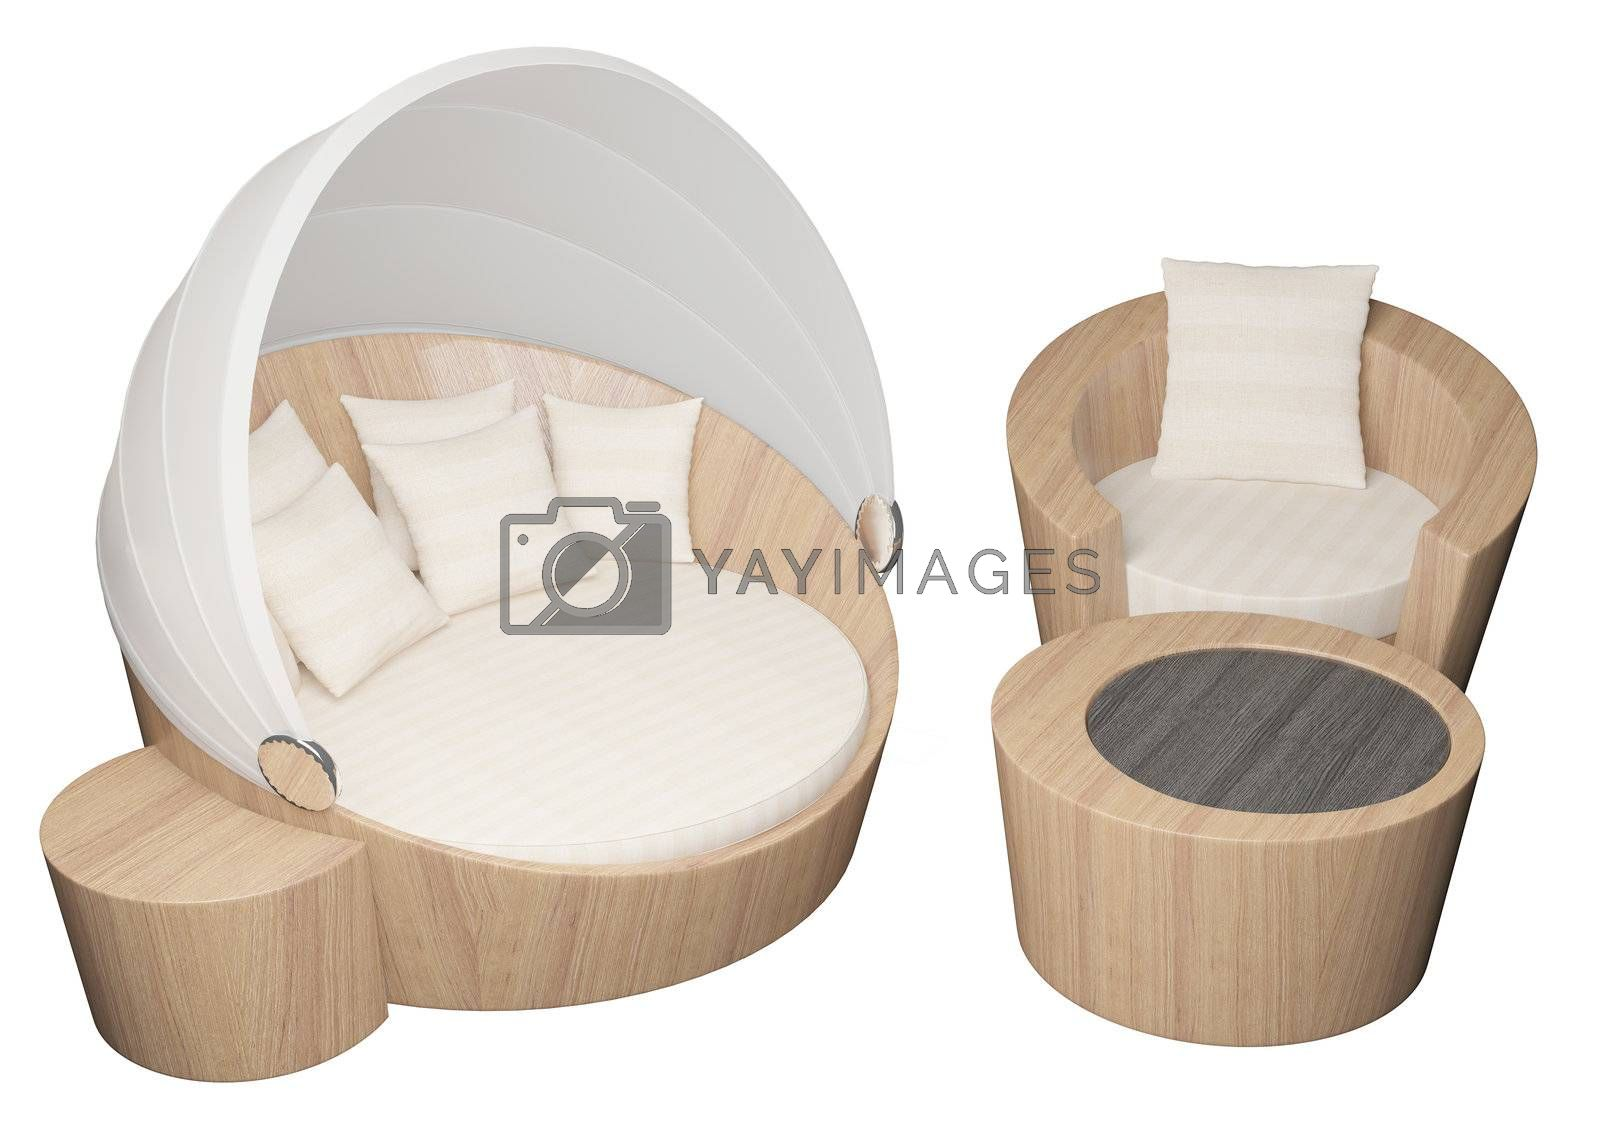 3D illustration of a wooden armchair and sofa with cushions, isolated against a white background